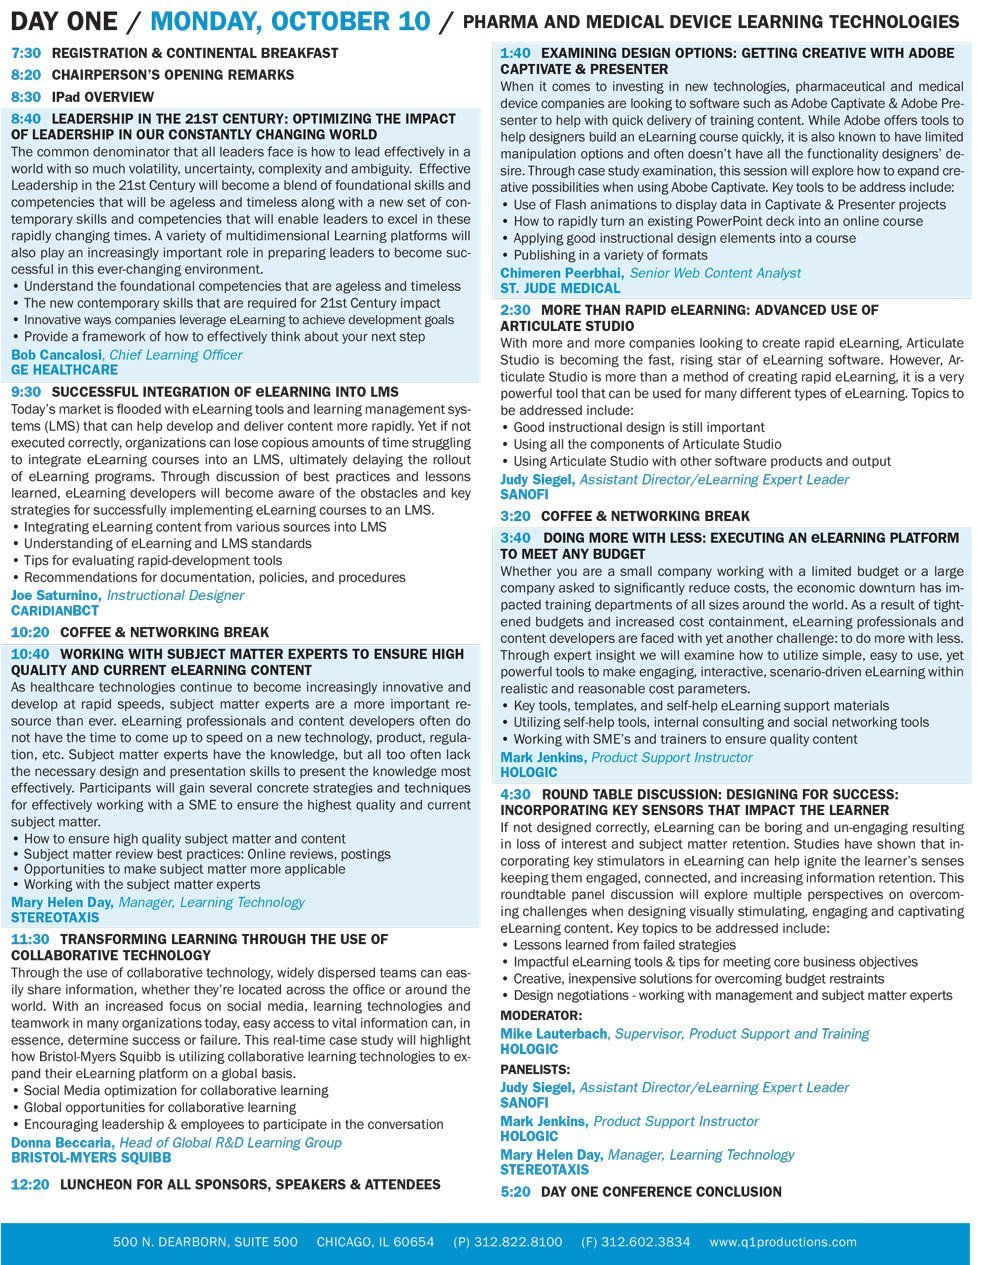 Learning-Technologies-Agenda-2